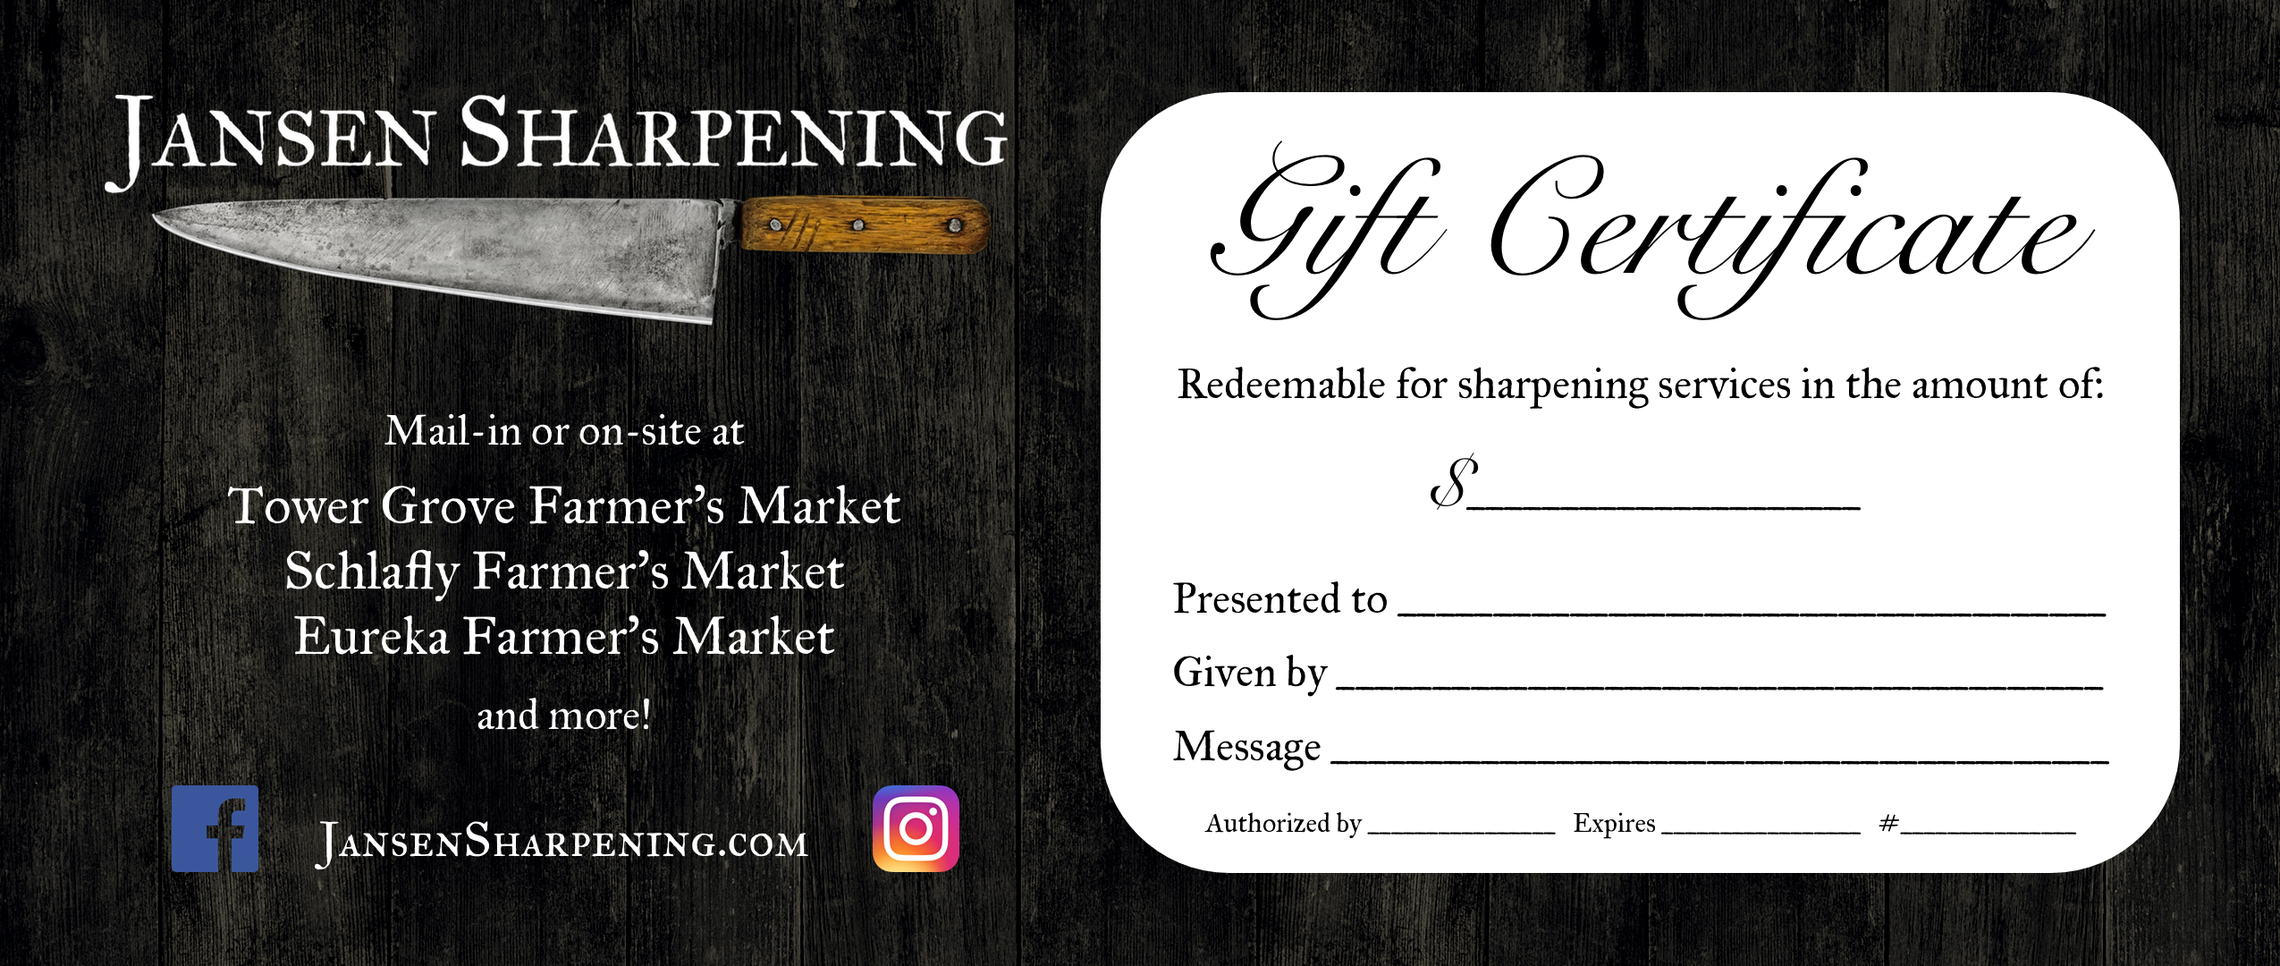 Jansen Sharpening Gift Certificate Sample